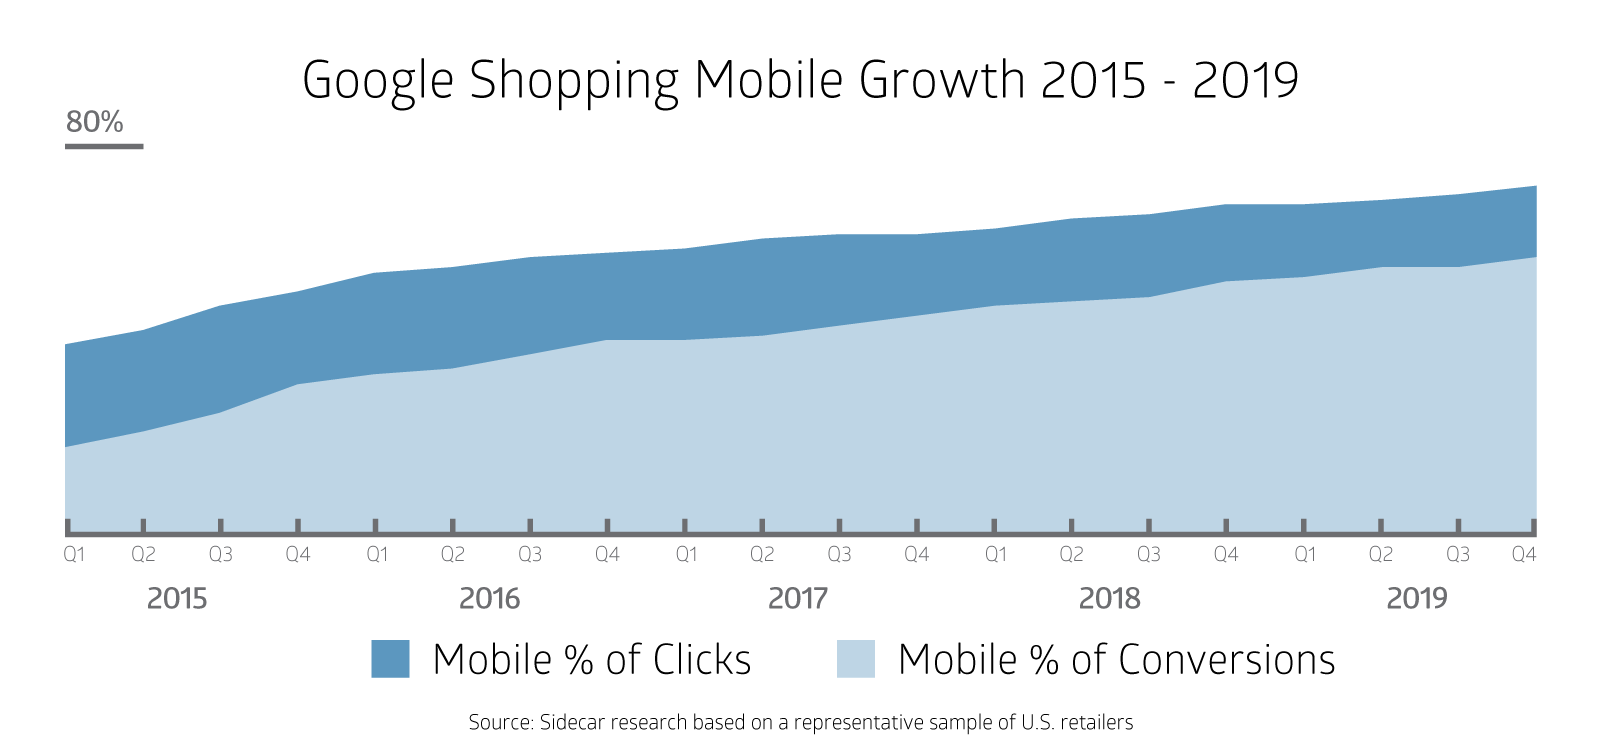 Google Shopping Mobile Growth